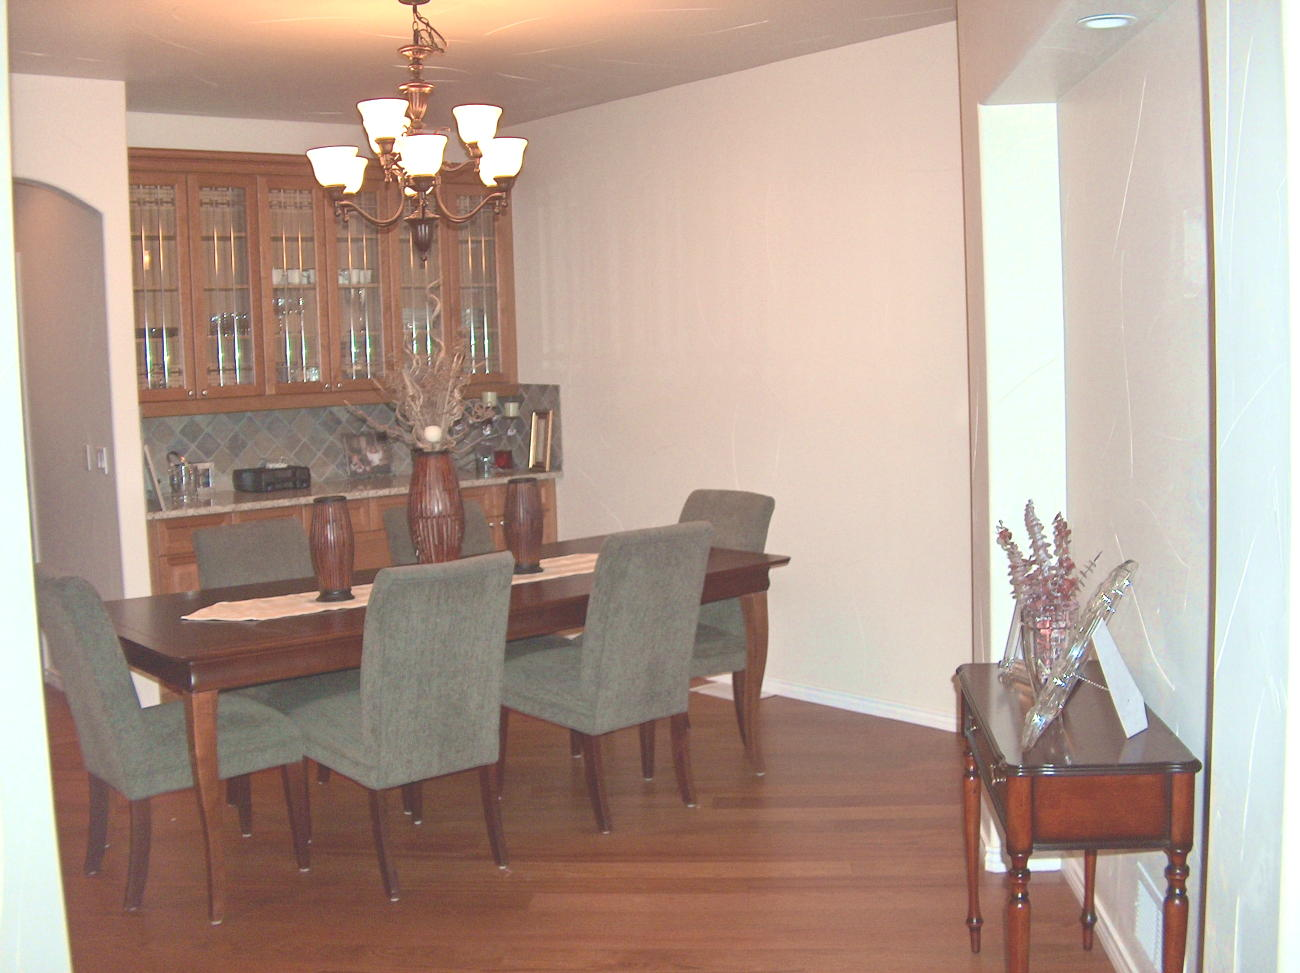 Photo of Dining Room Before Staging